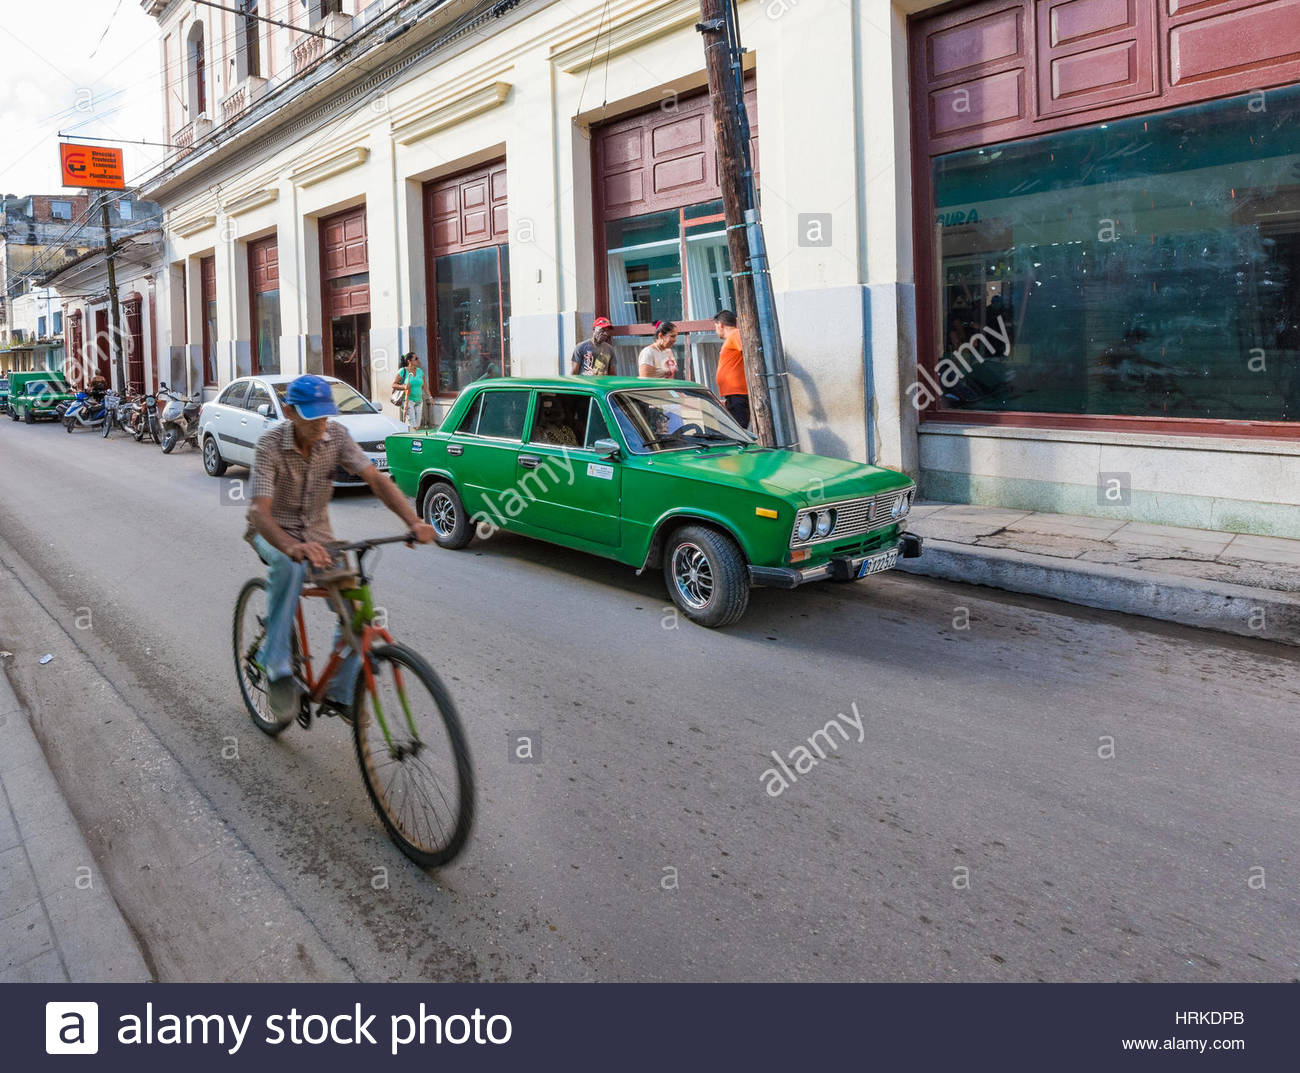 Senior riding bicycle in Colon Street. Cuban transportation and lifestyle during the Revolutionary period. - Stock Image